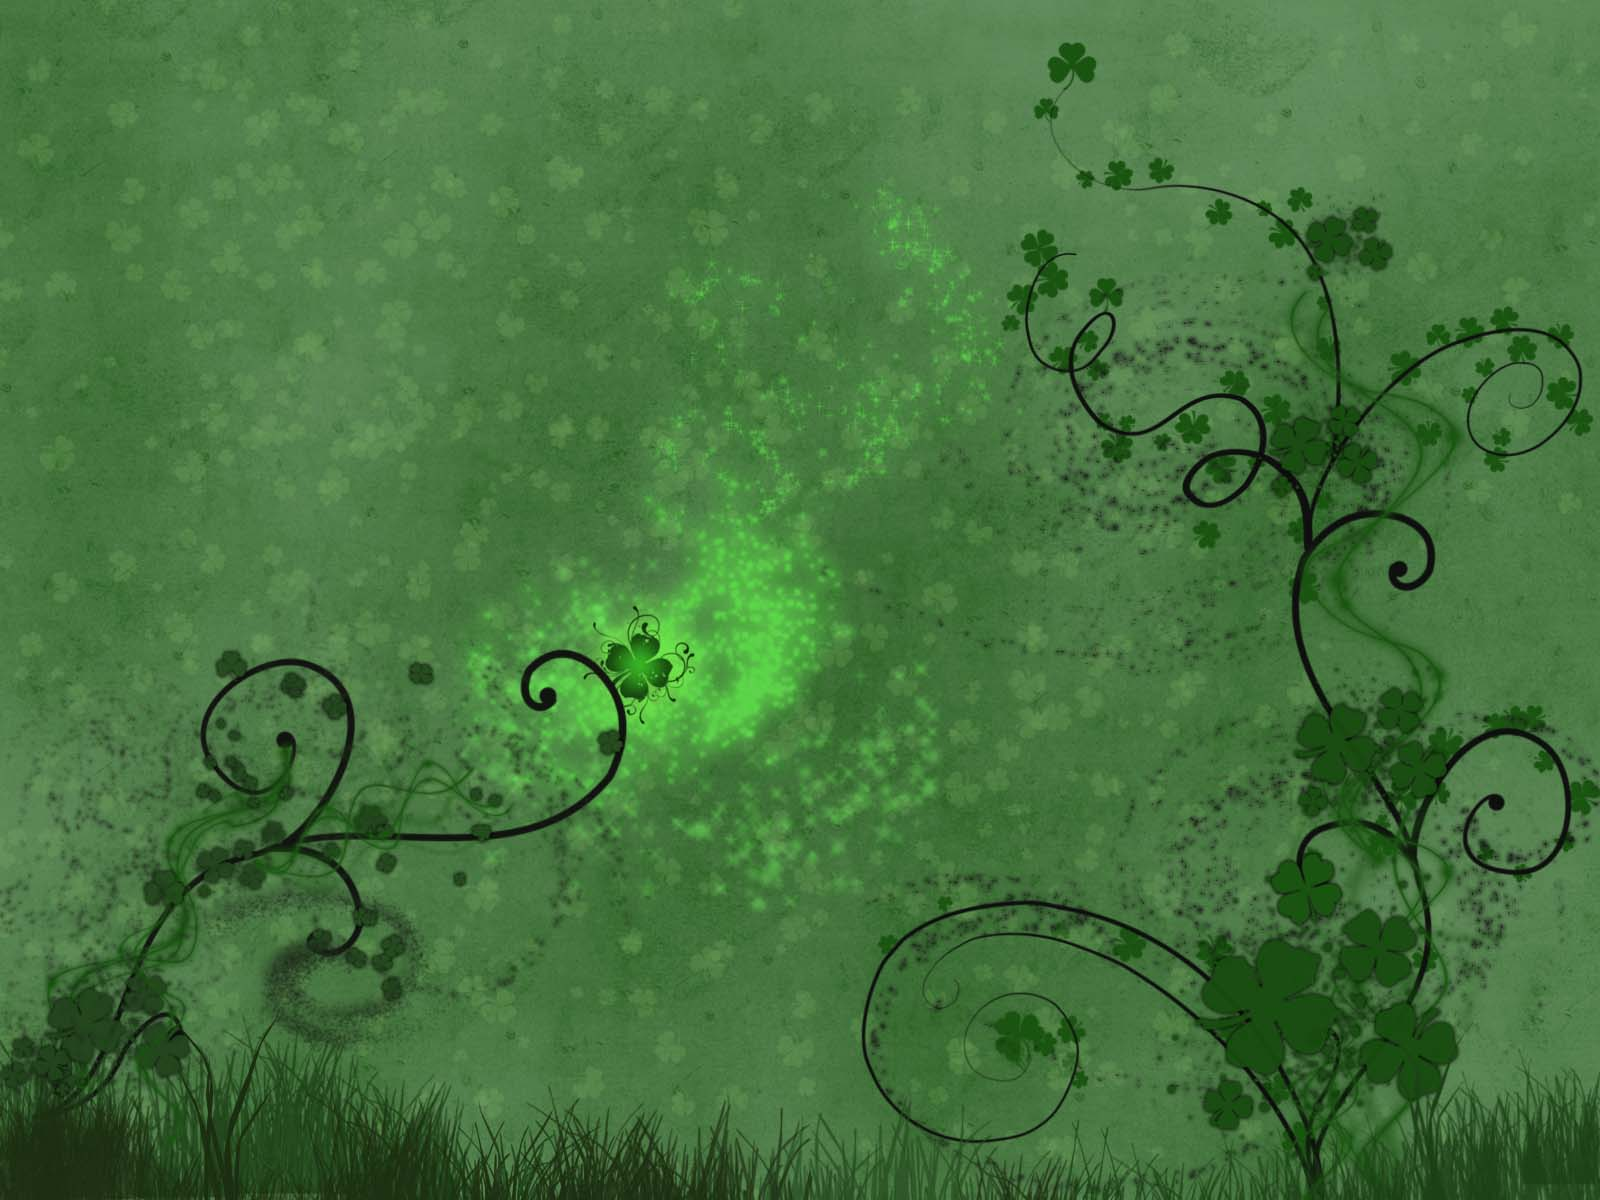 Shamrock Wallpapers Desktop Design Ideas ~ Shamrock Wallpapers Hd